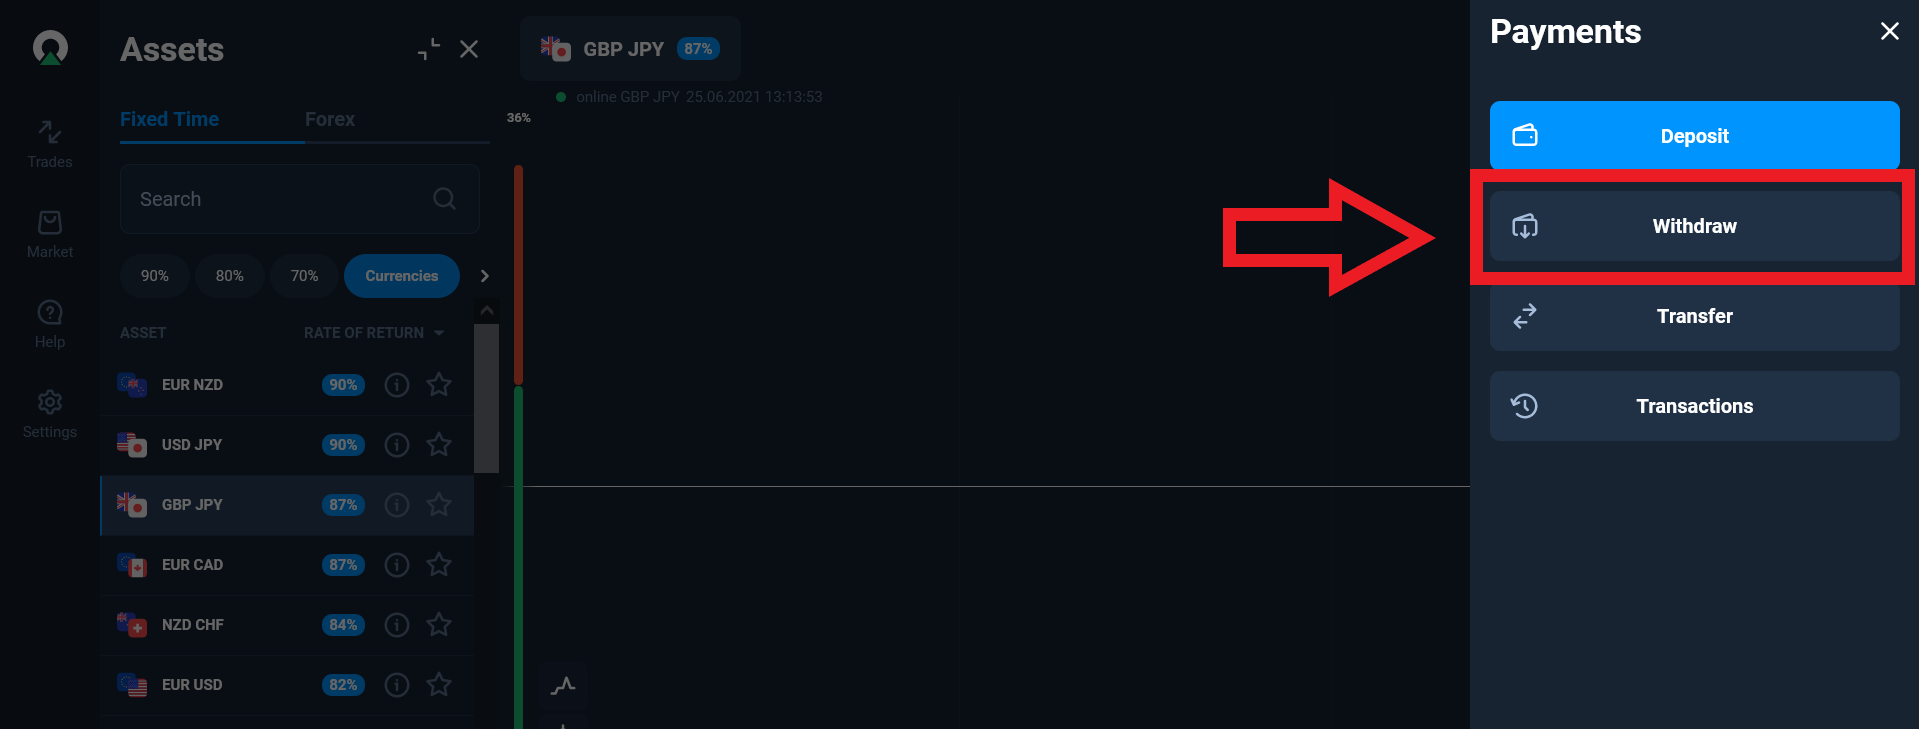 withdrawal button on olymp trade